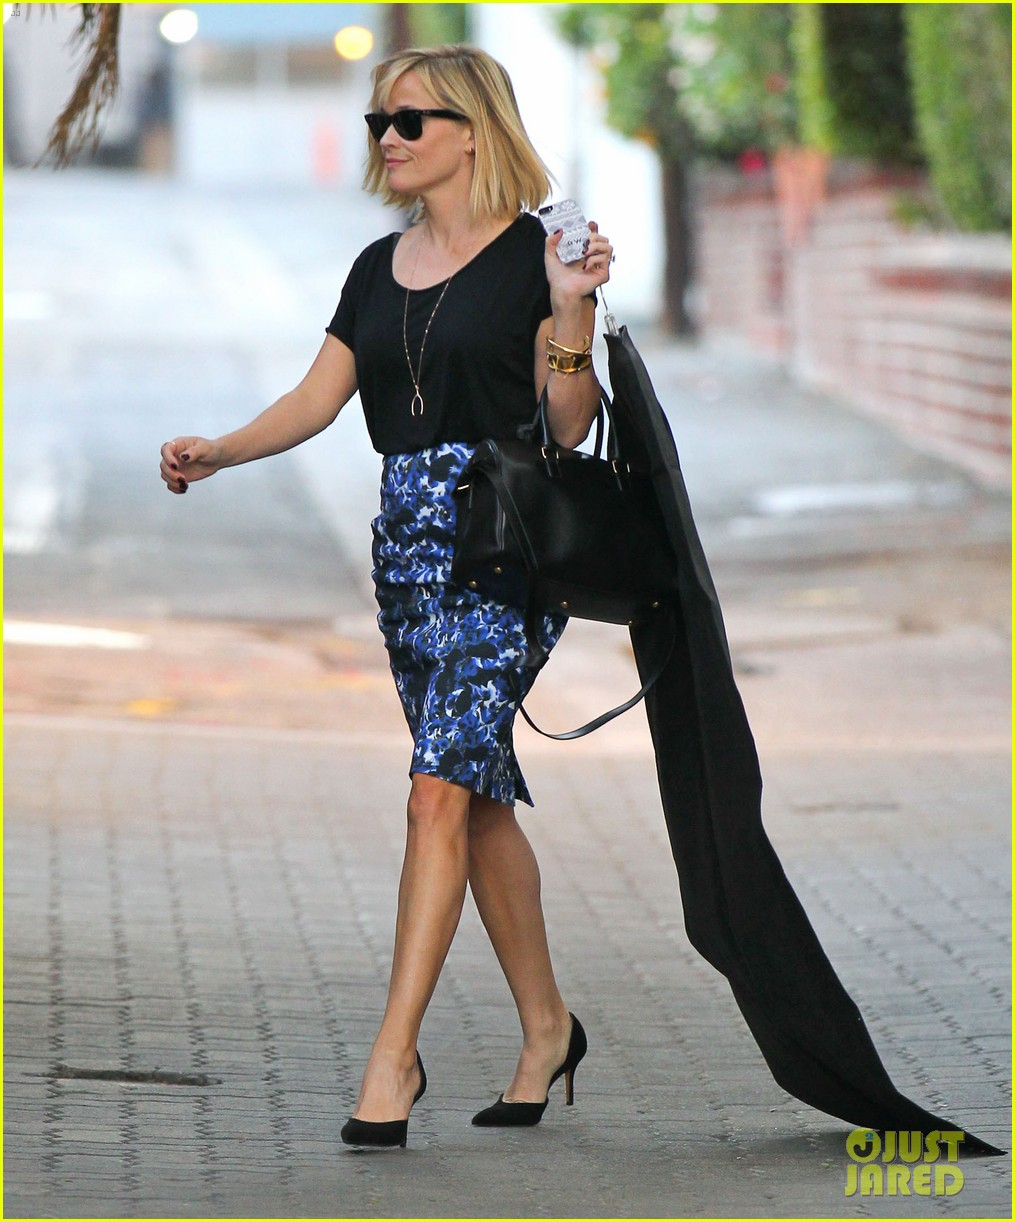 reese witherspoon steps out after the intern news 03